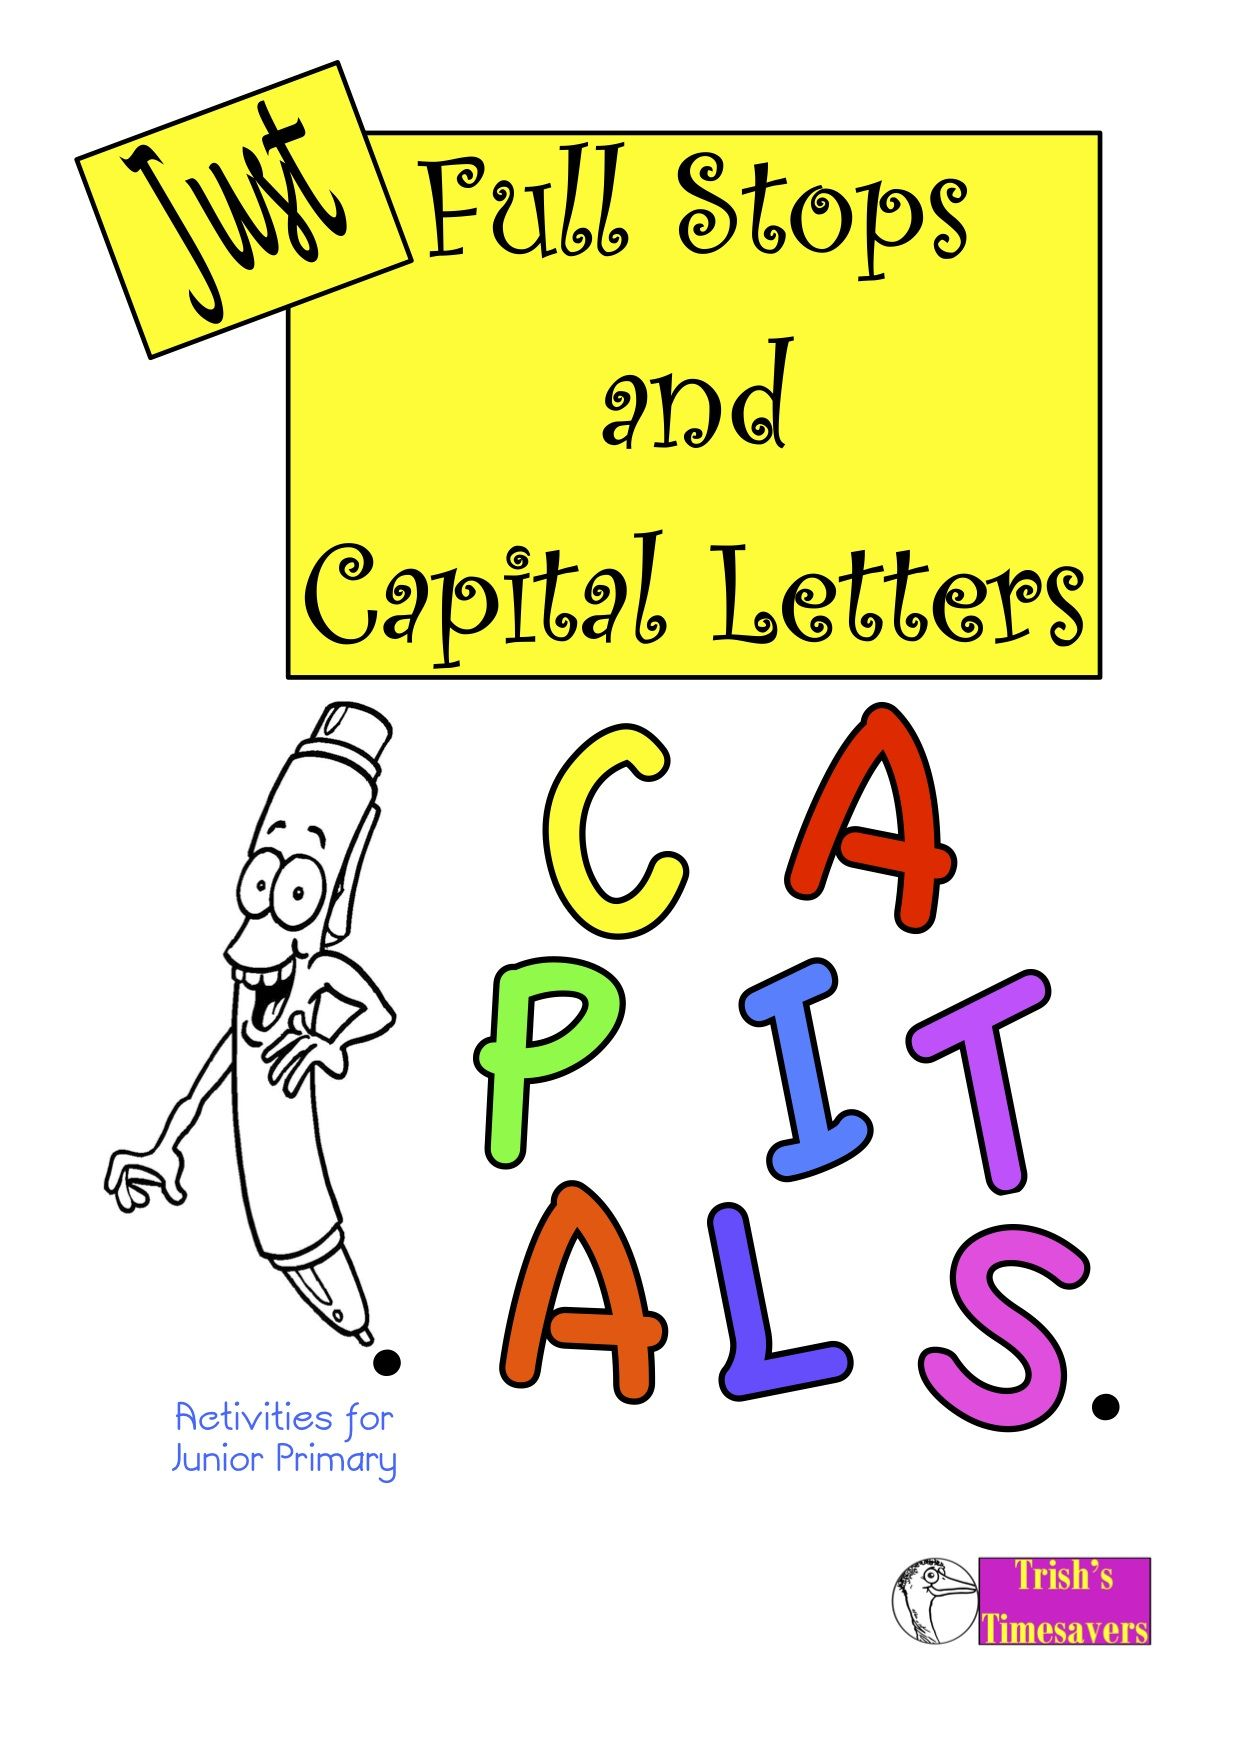 Using The Punctuation Marks Of Full Stops And Capital